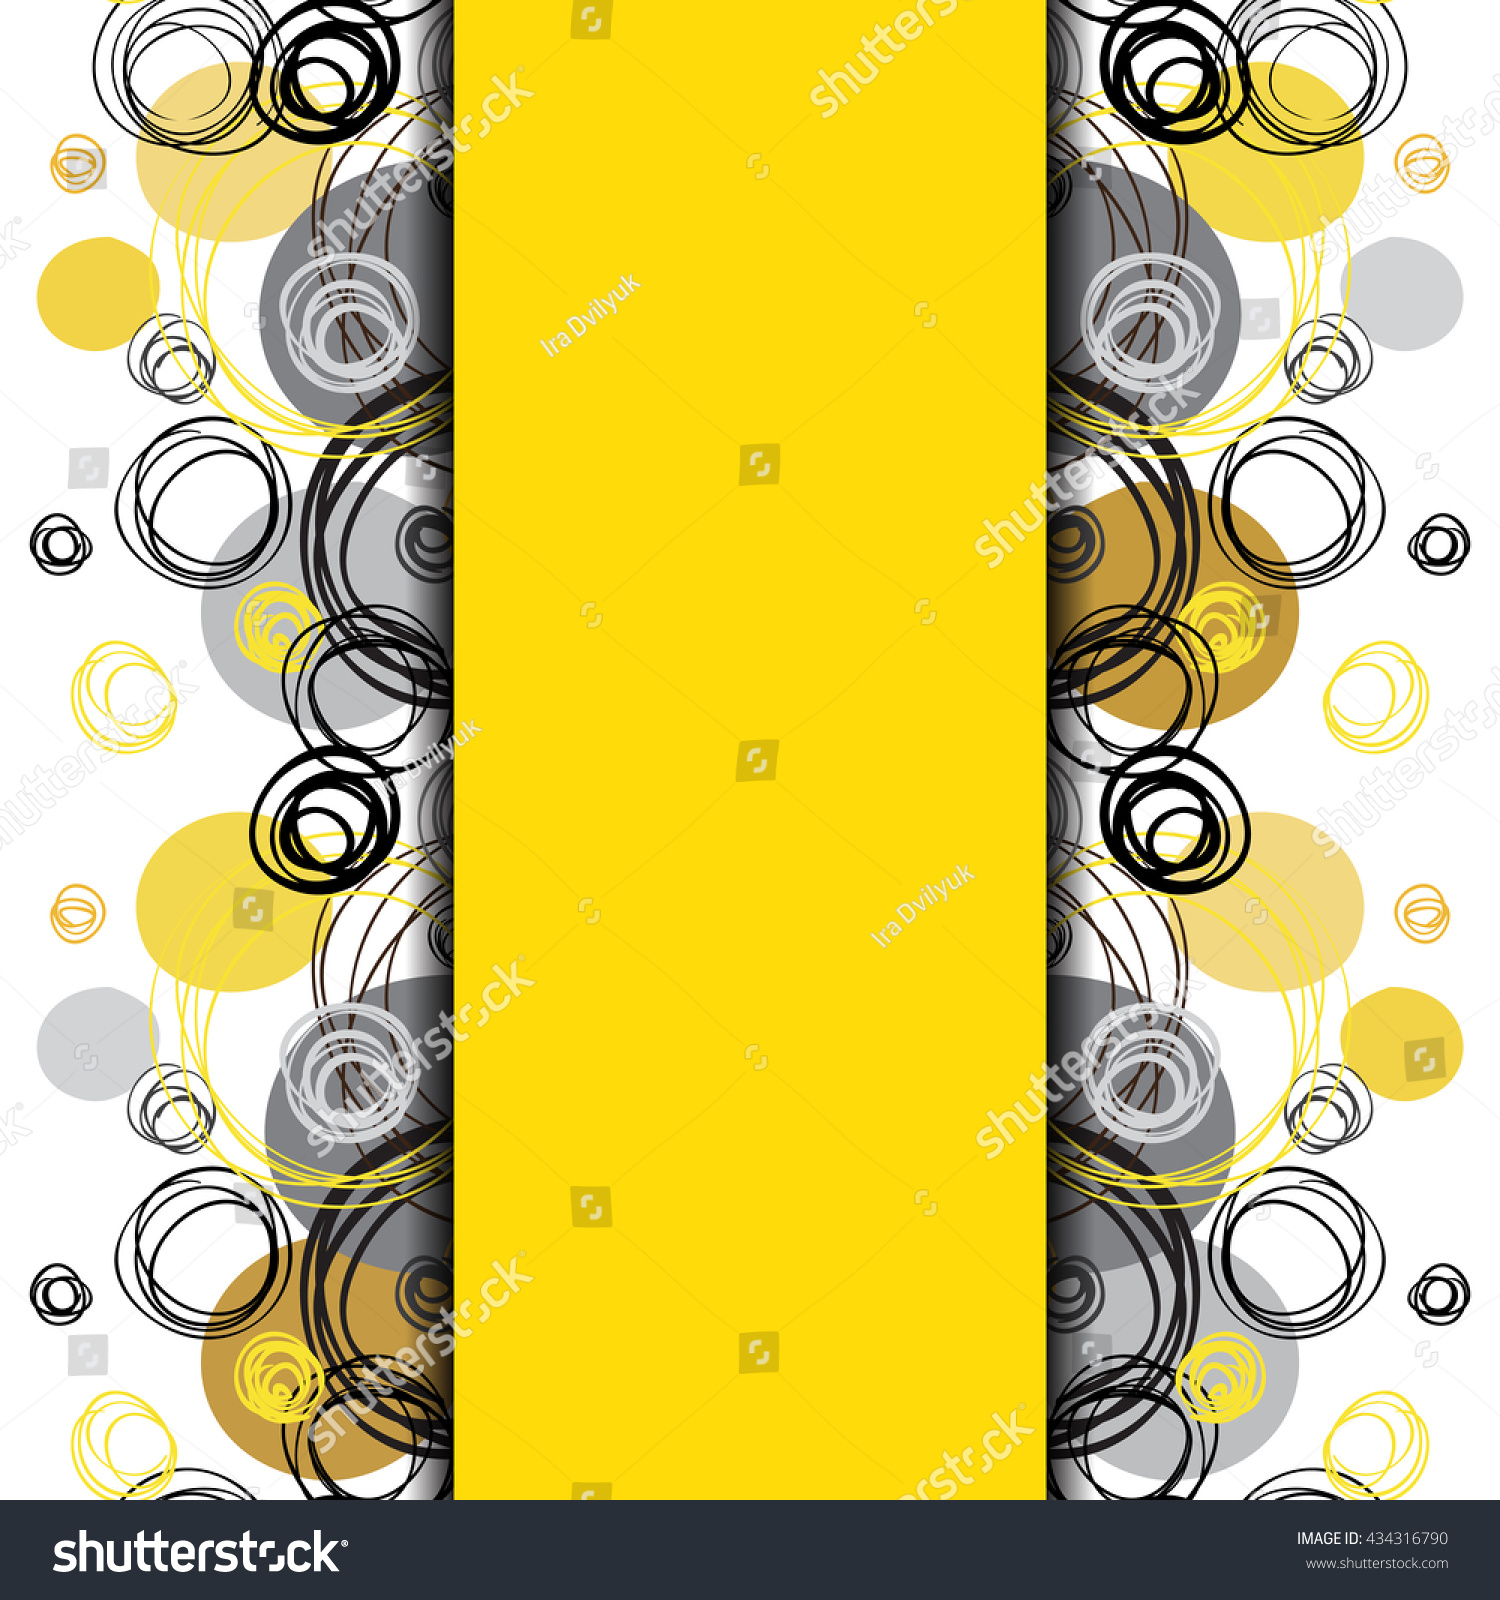 Background image vertical center - Abstract Geometric Background Vertical Center Border Stripe Design Black Yellow Gray Hand Drawn Intersecting